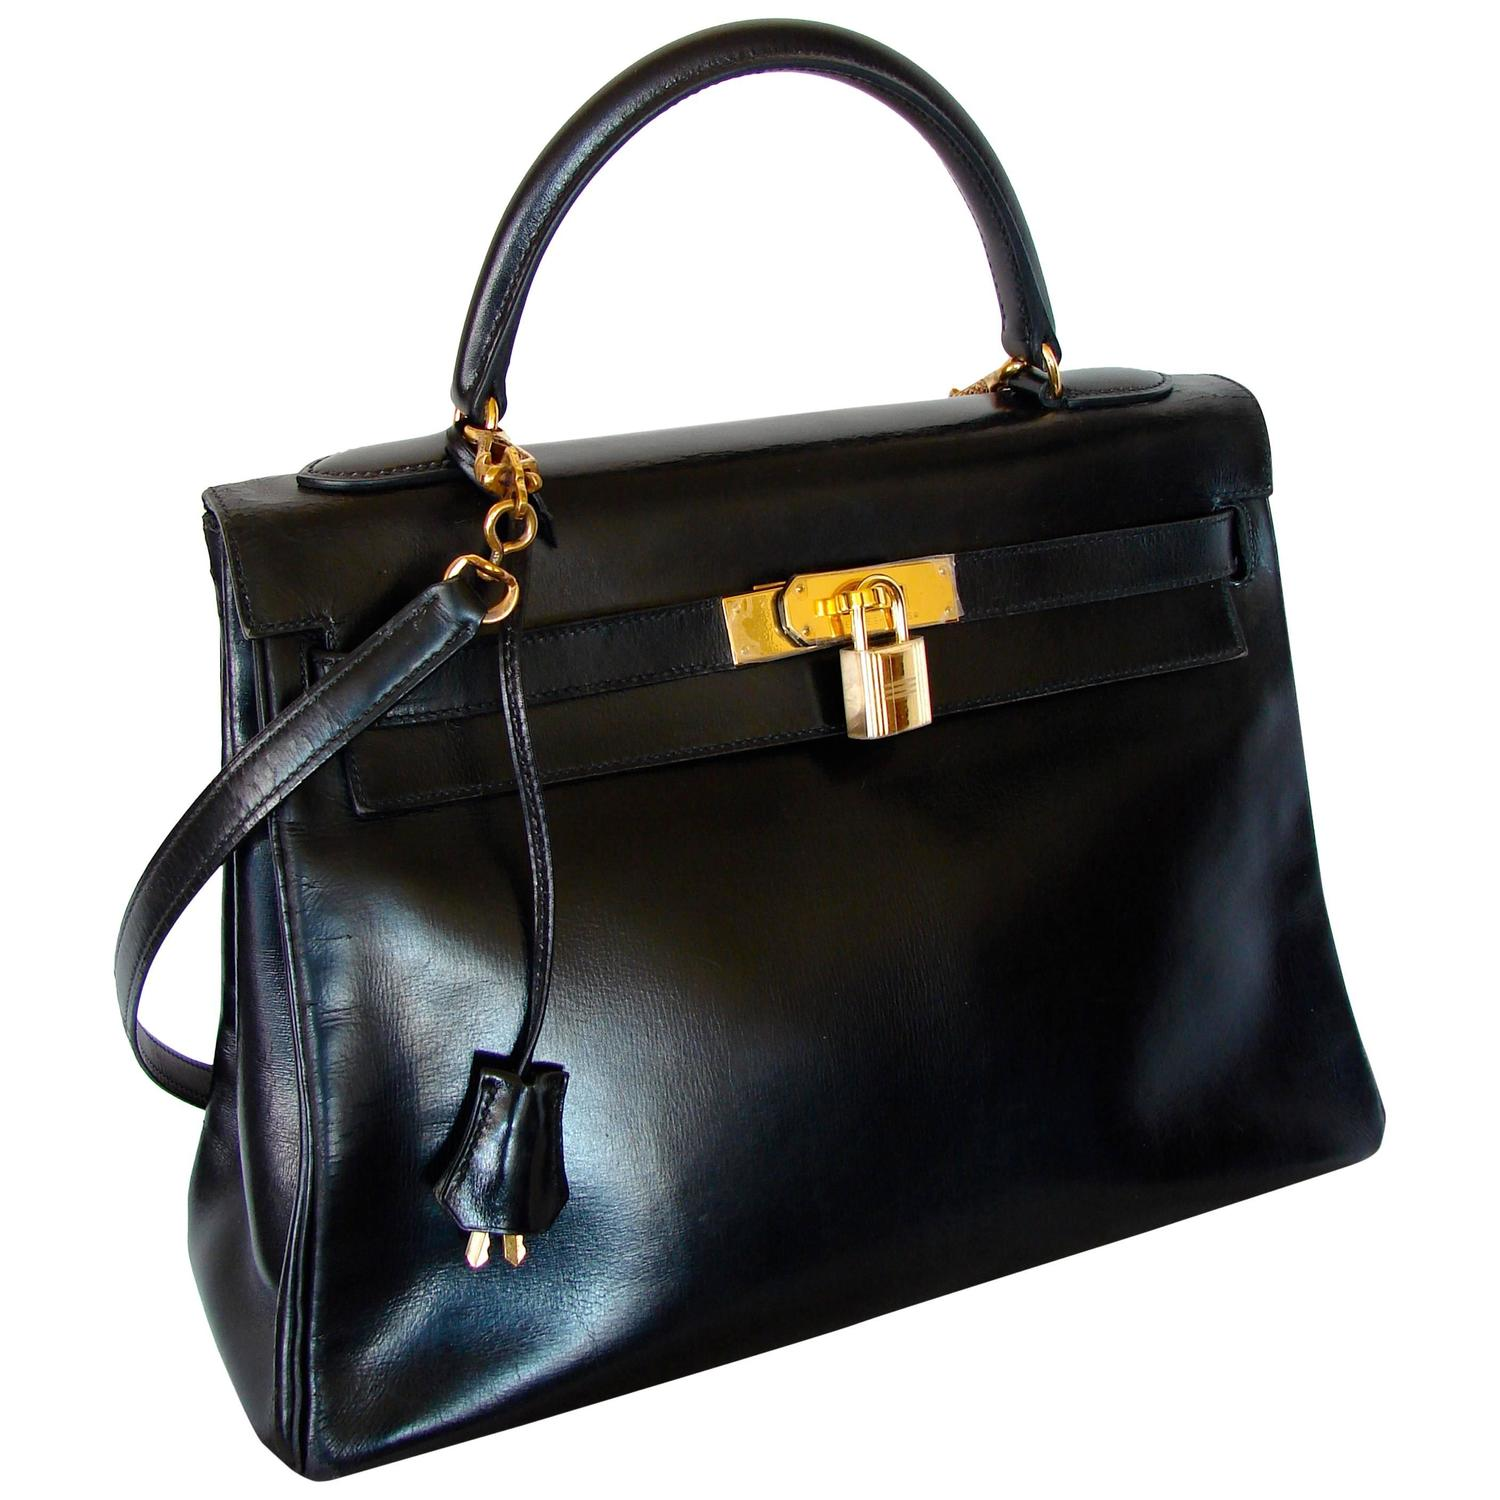 hermes hand bags - Hermes Kelly 32 Handbag Black Box Leather with Strap 1960s Bonwit ...